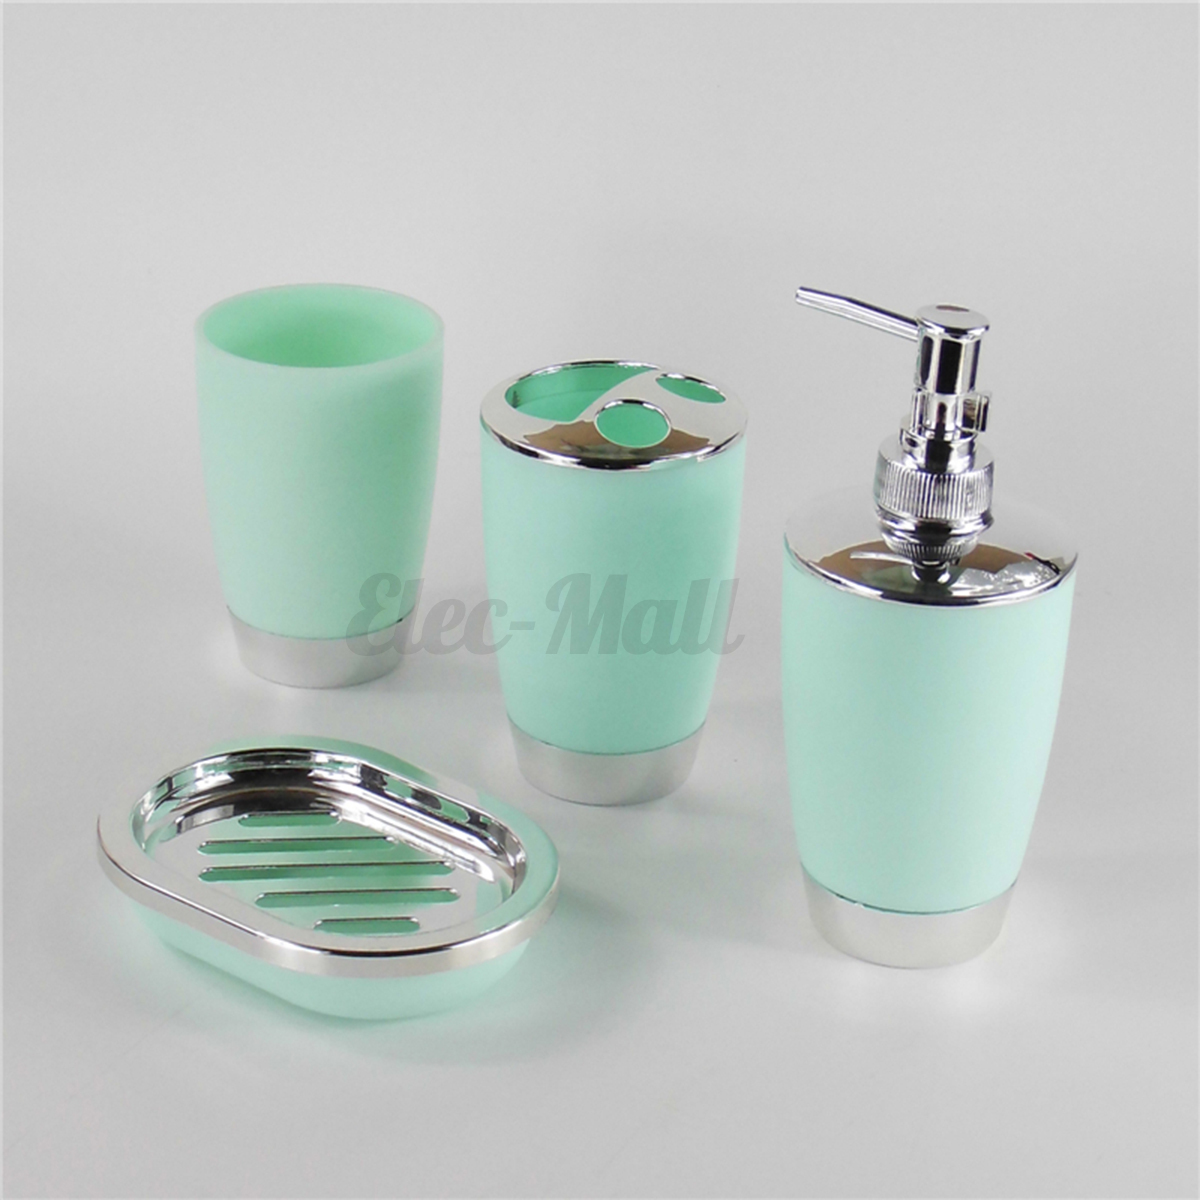 4pcs set plastic bathroom suit bath accessories cup toothbrush holder soap dish ebay - Bathroom soap dish sets ...